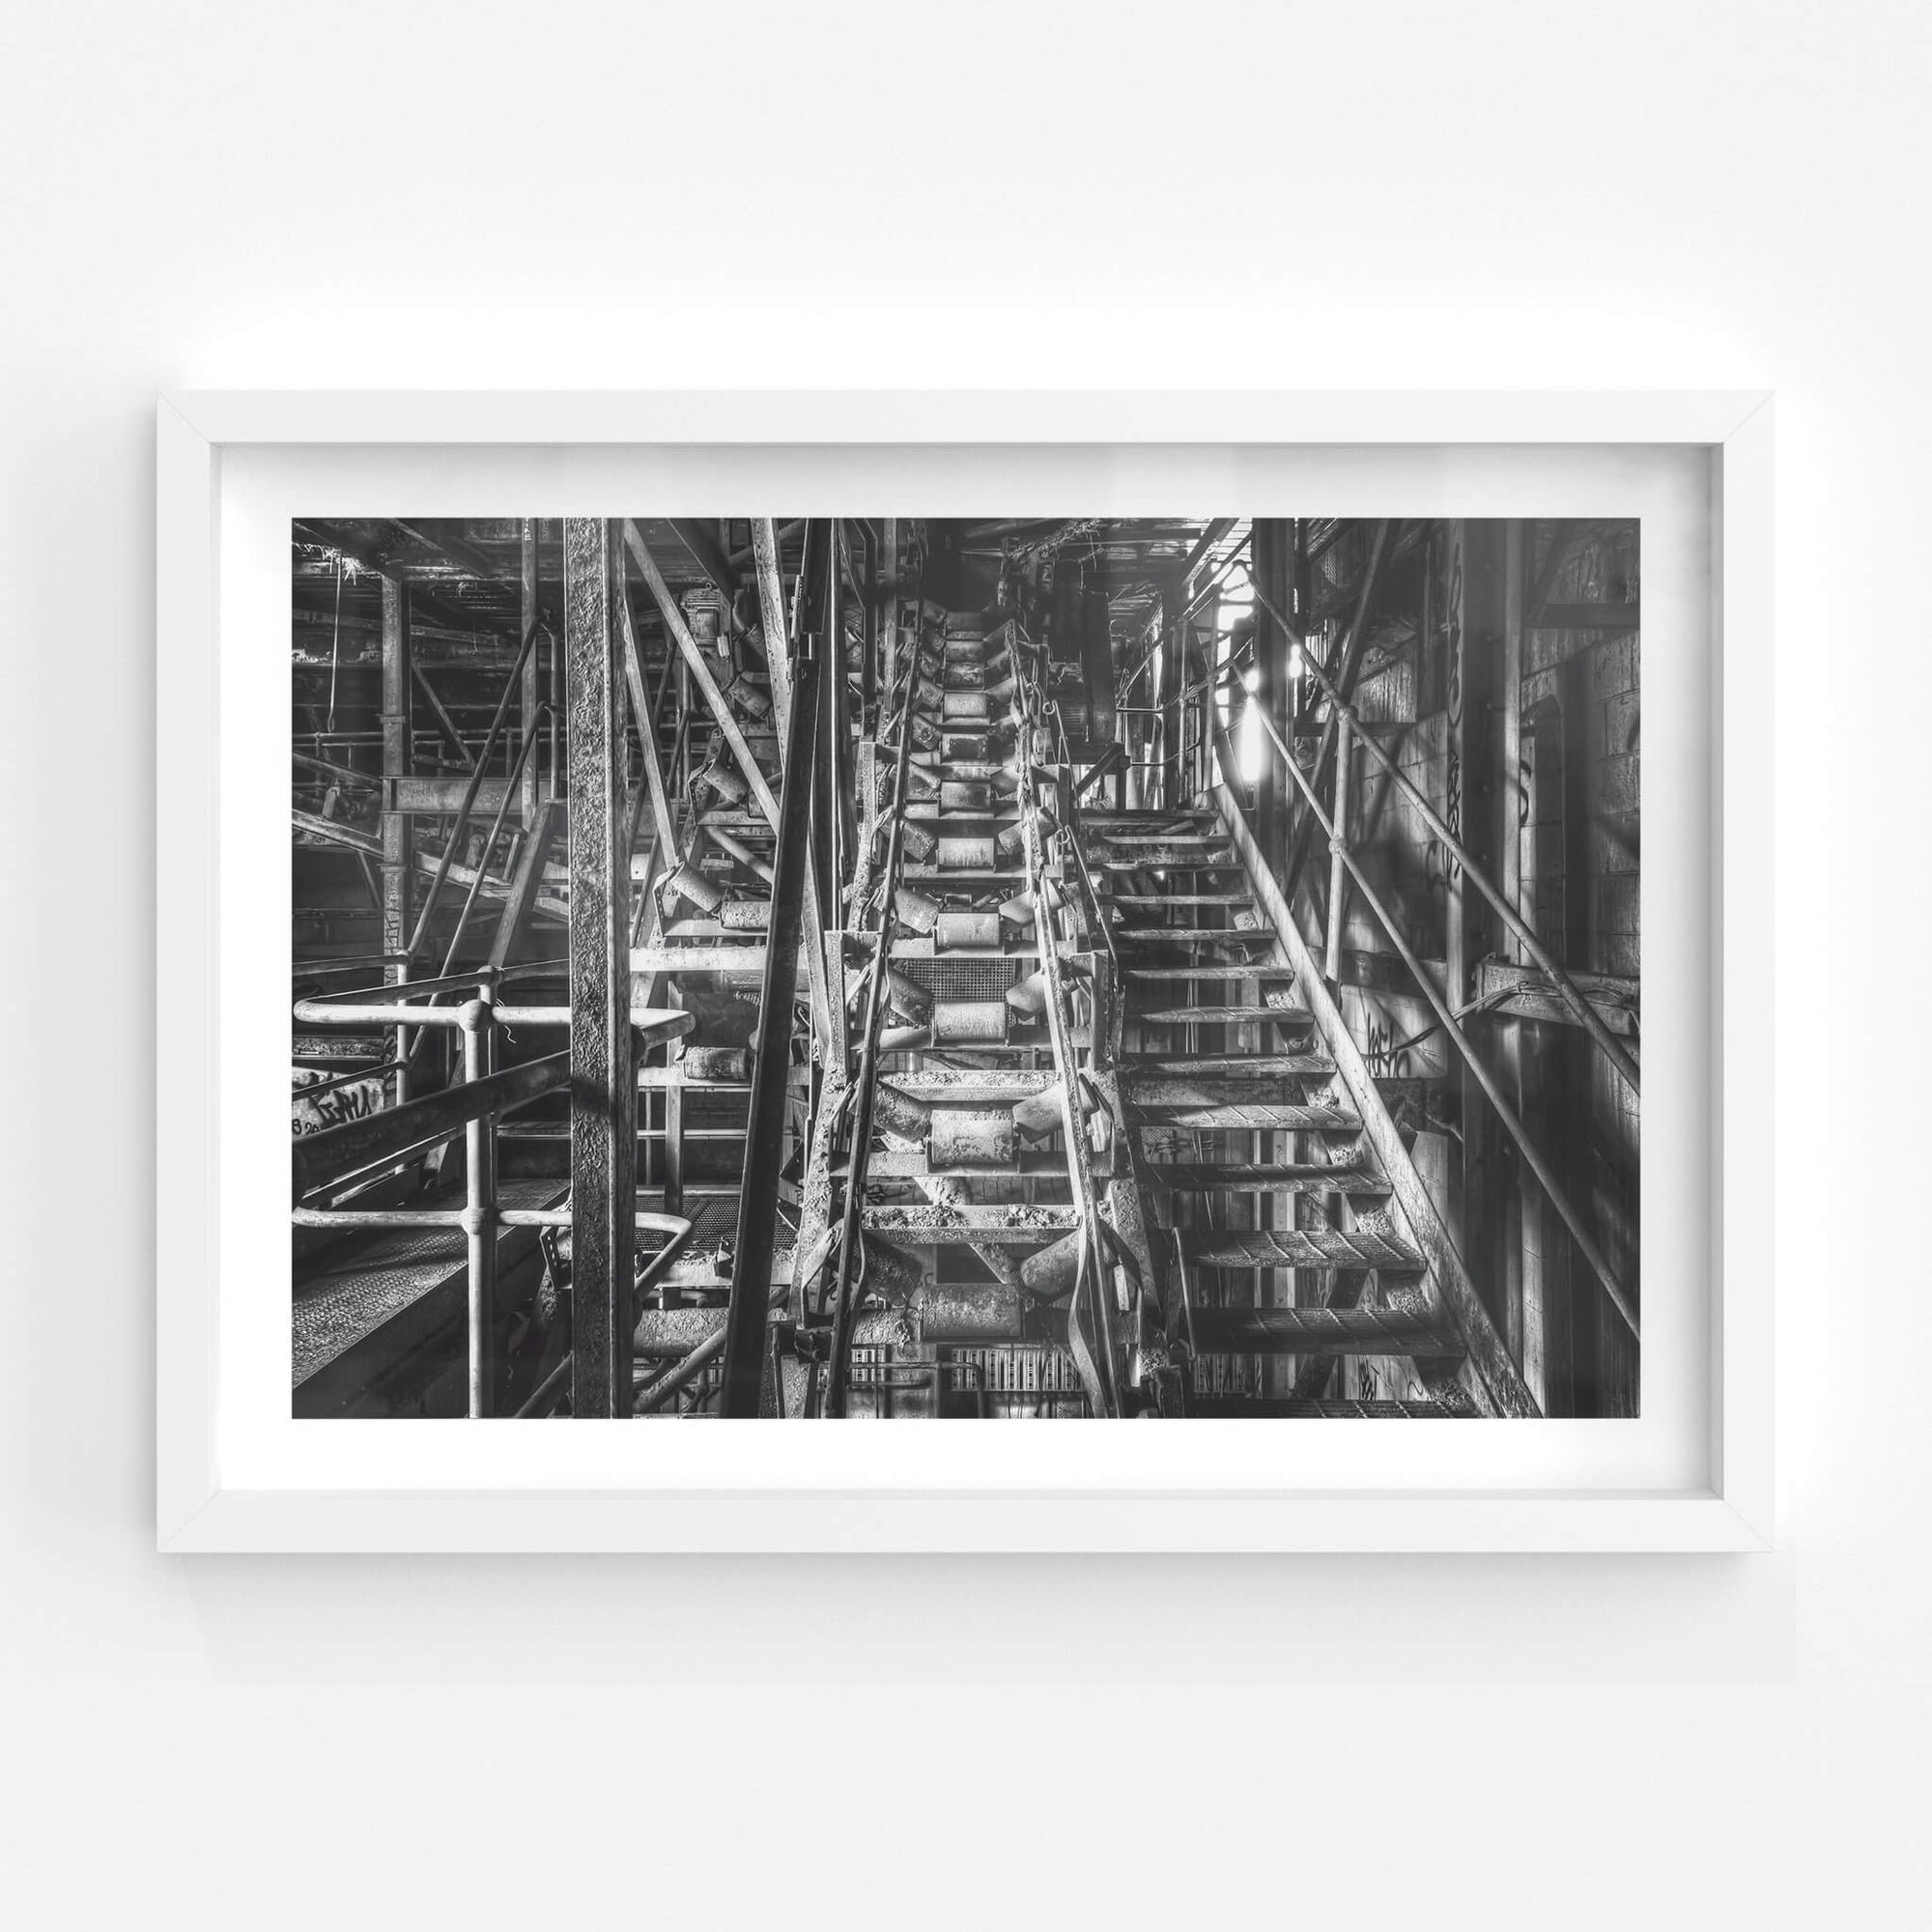 Main Conveyor | Hornsby Quarry Fine Art Print - Lost Collective Shop